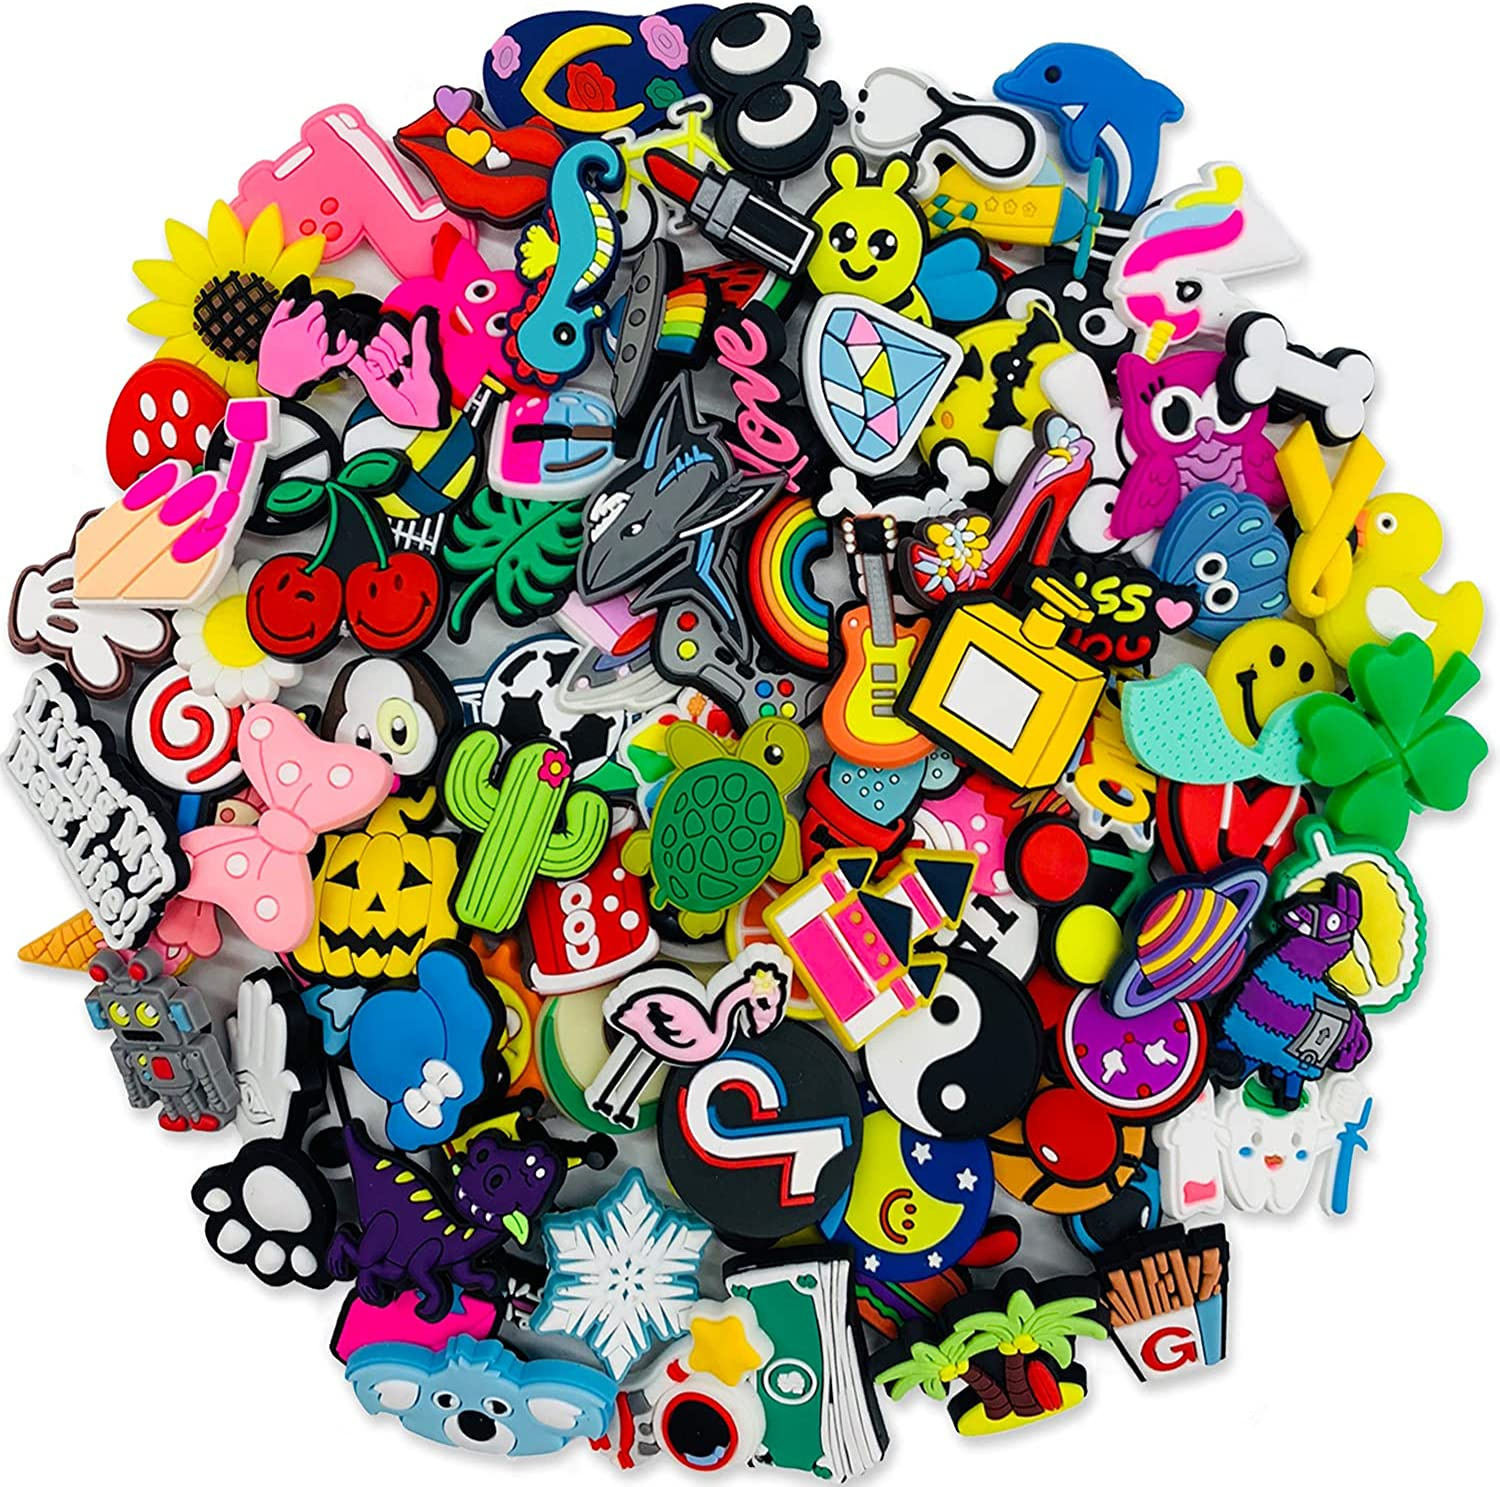 Year-end gift Kinear 100Pack Different Shoe Decoratio Charms Max 71% OFF Unisex-adult